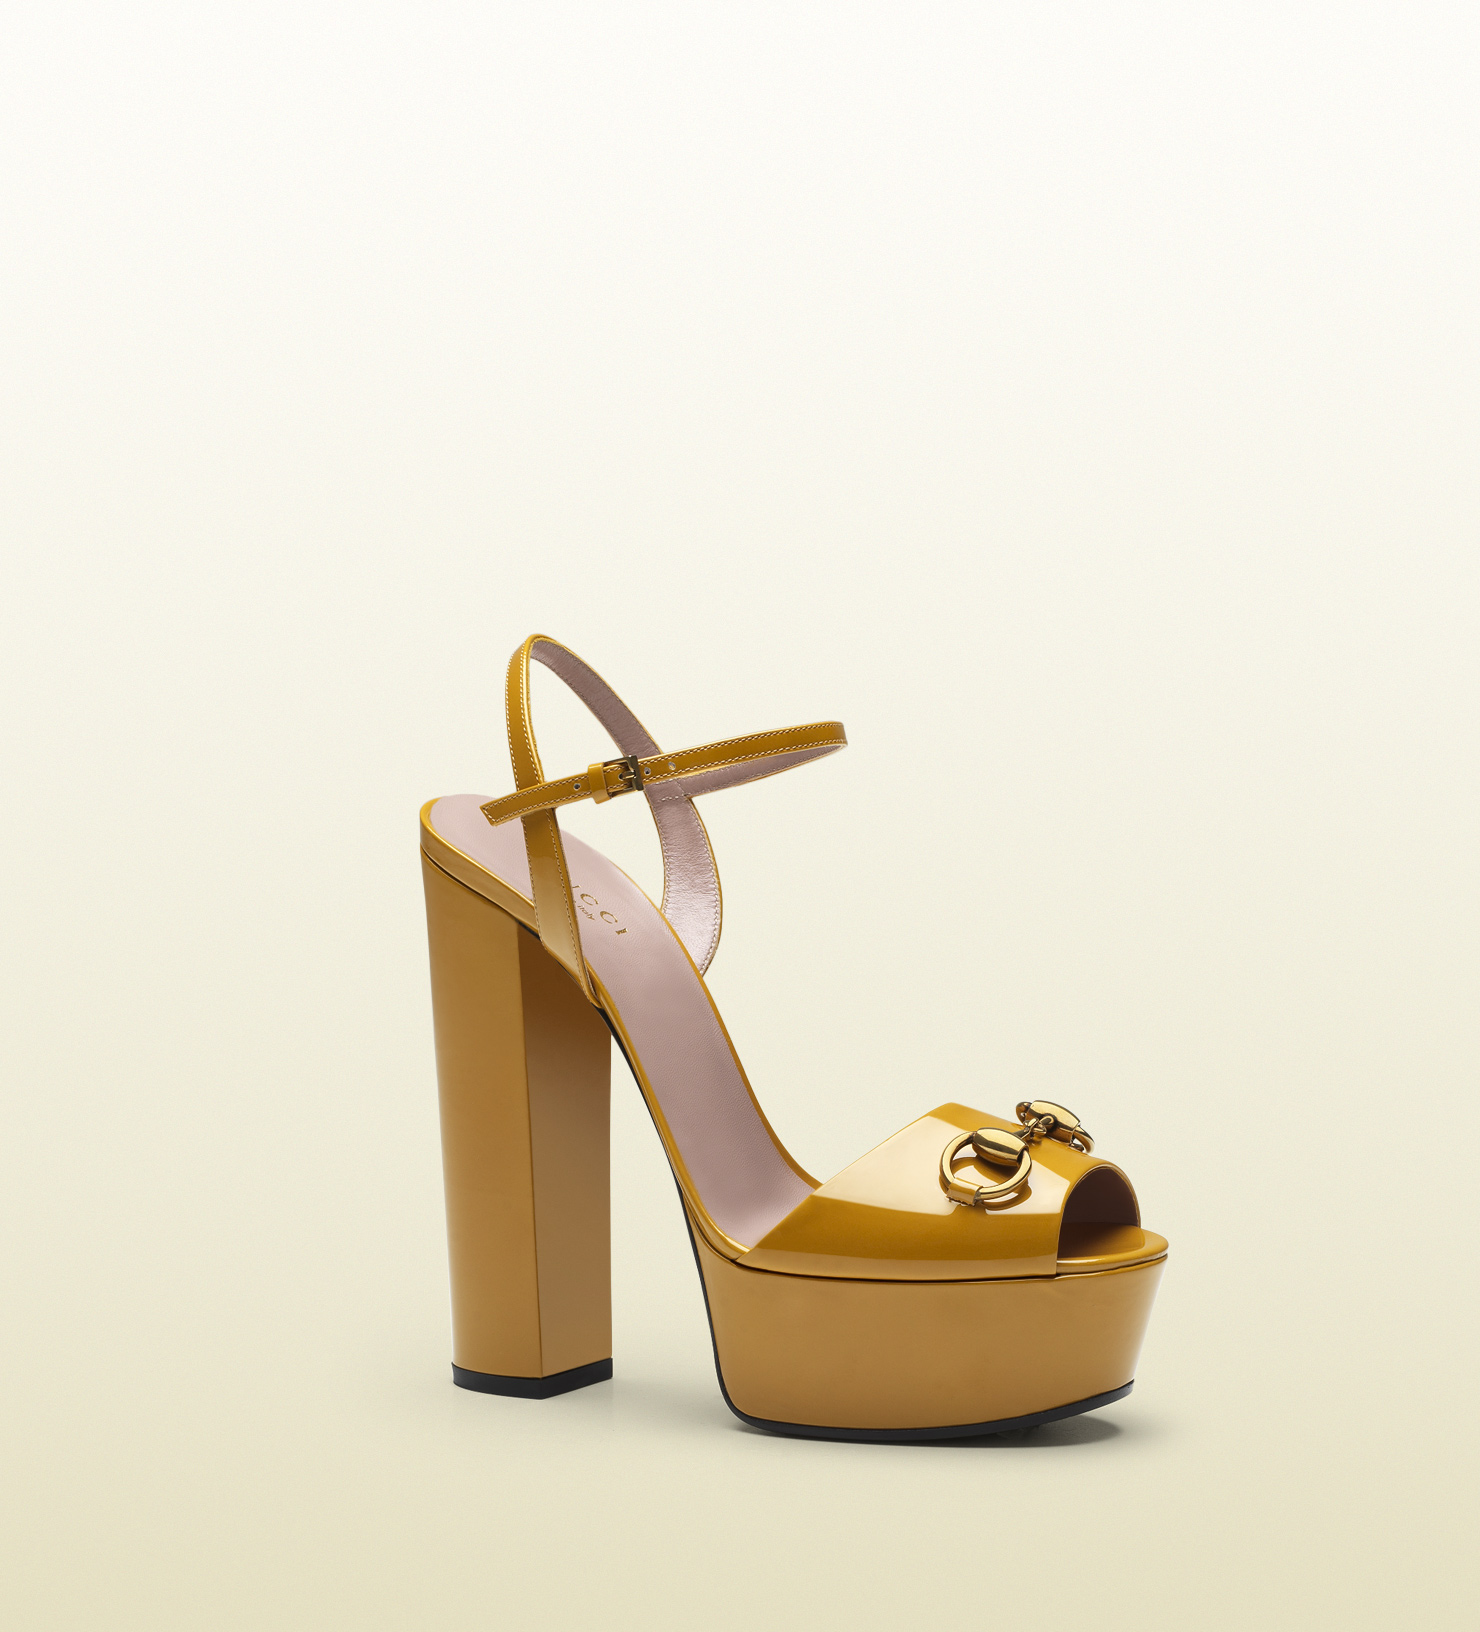 759662537ff Gucci Patent Leather Platform Sandal in Yellow - Lyst